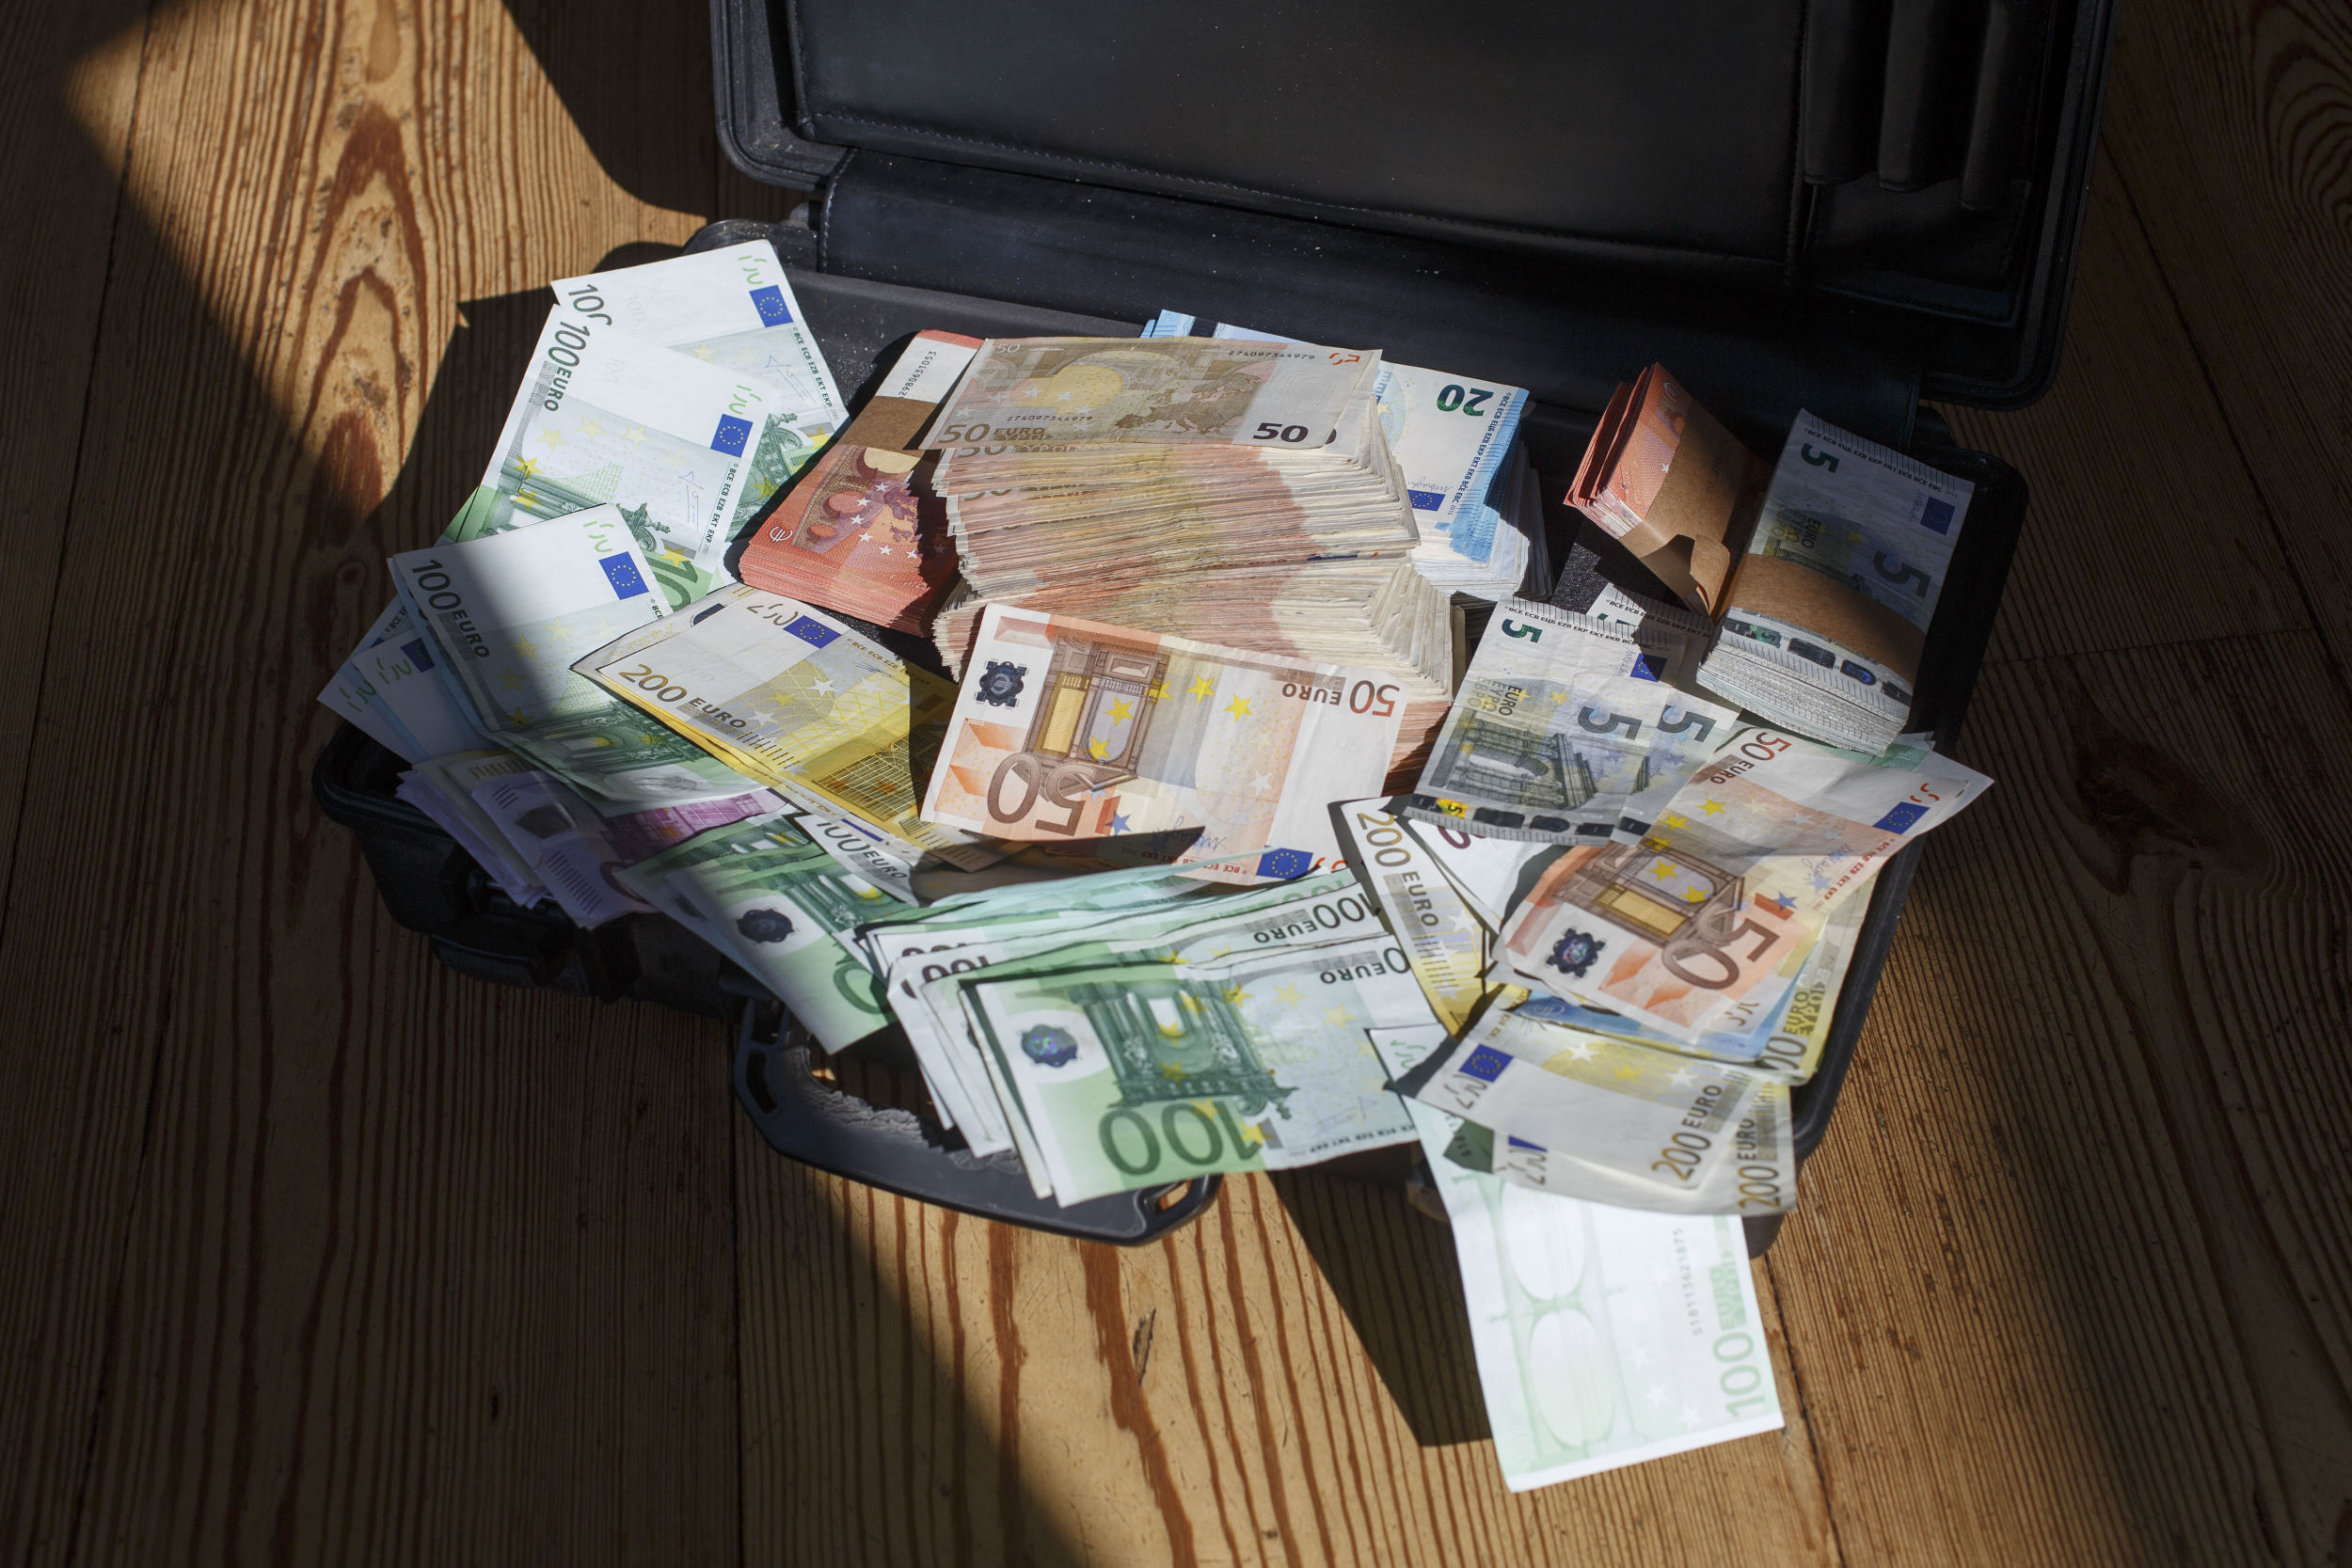 geld, money, euro, sparen, savings, pensioen, retirement, biljet, papiergeld, contant, cash